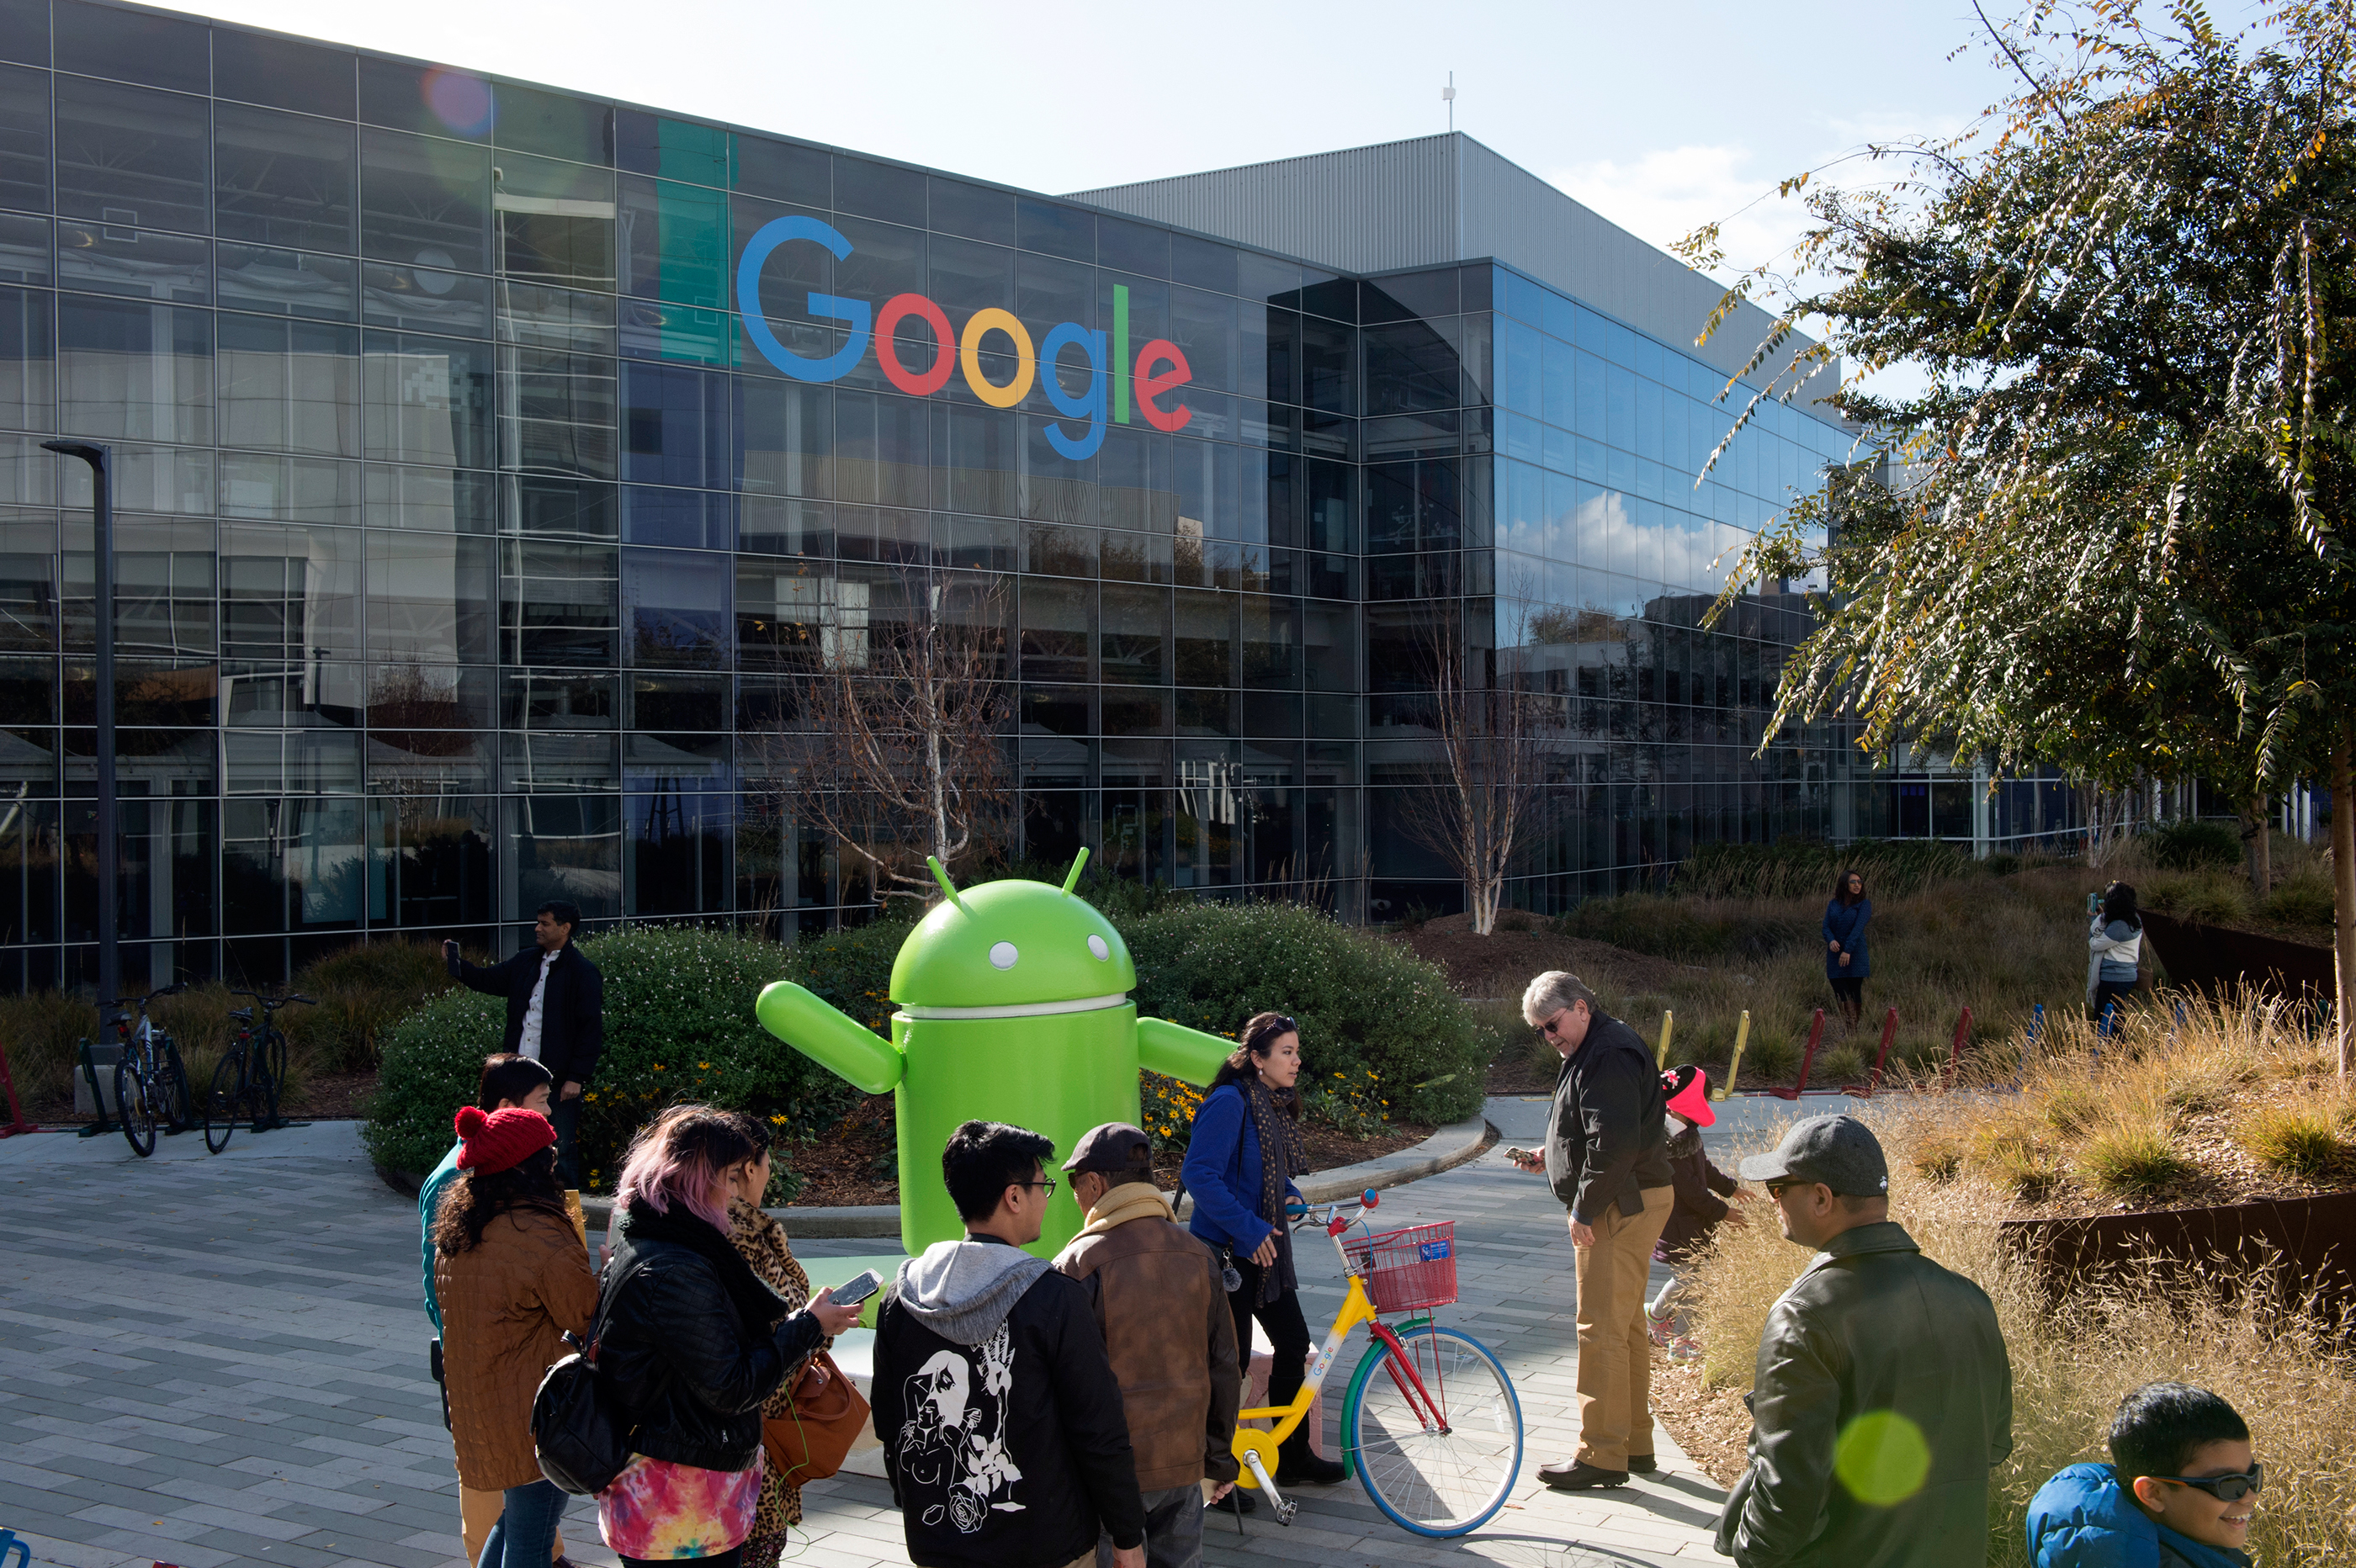 Tourist visit the headquarter of Google in Mountain View, California.